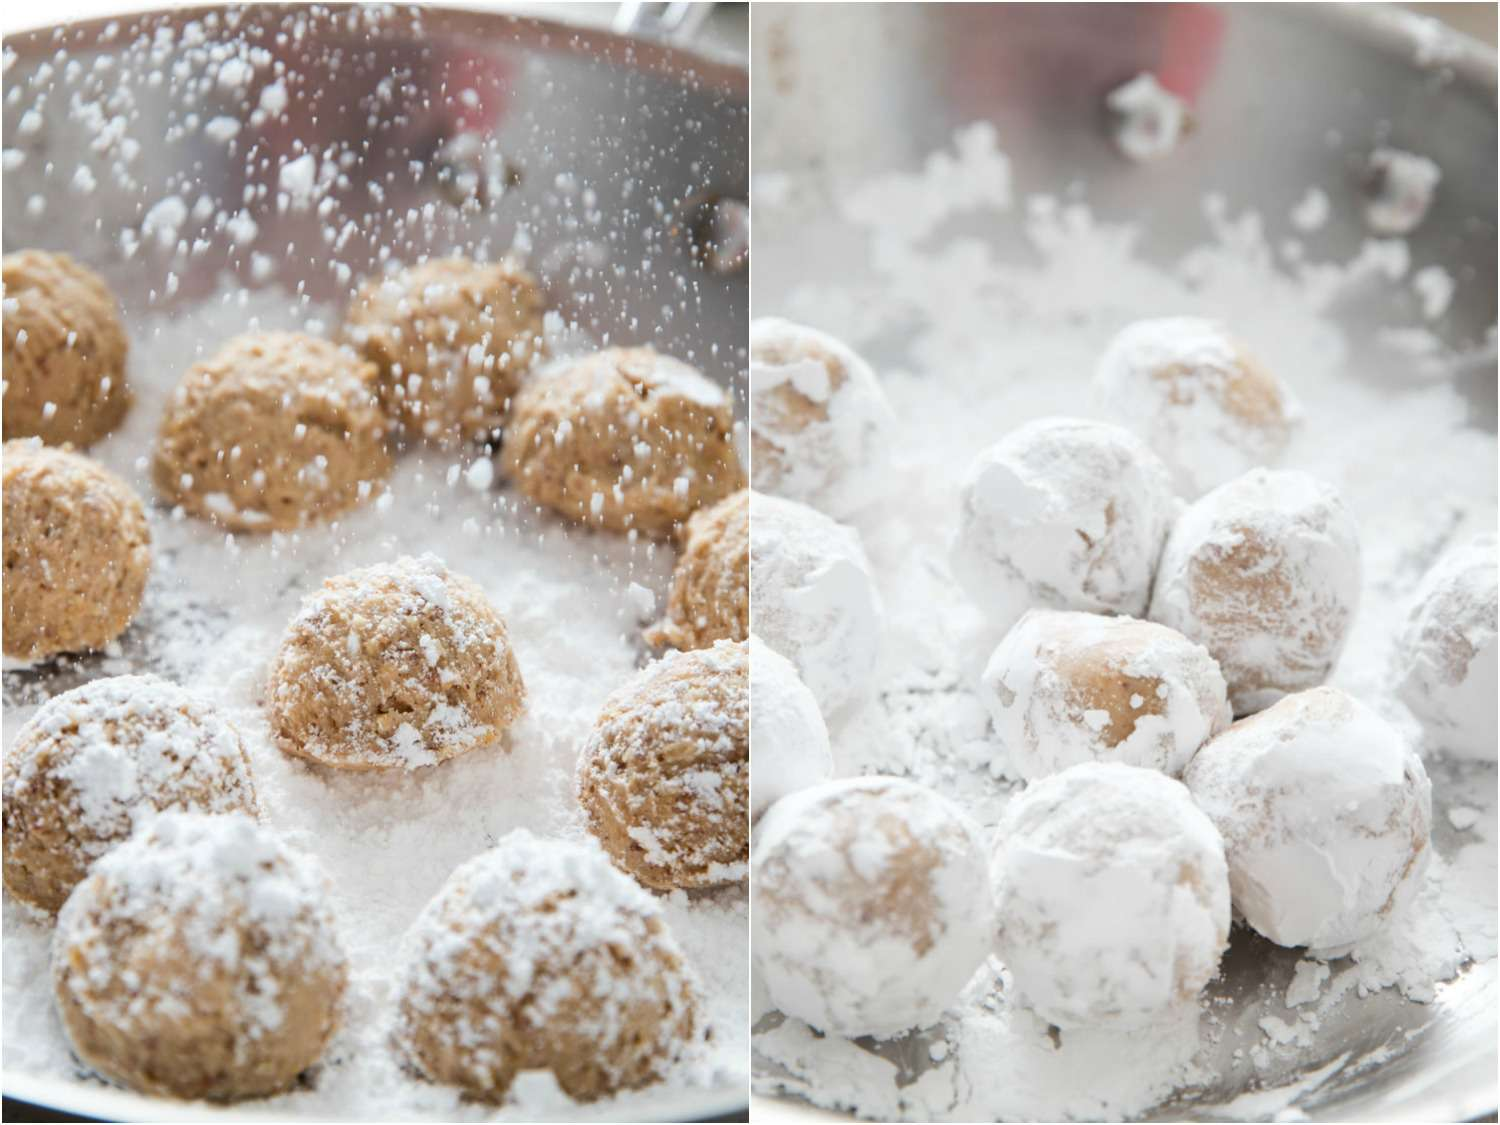 20161207-mexican-wedding-cookies-vicky-wasik--collage-2.jpg